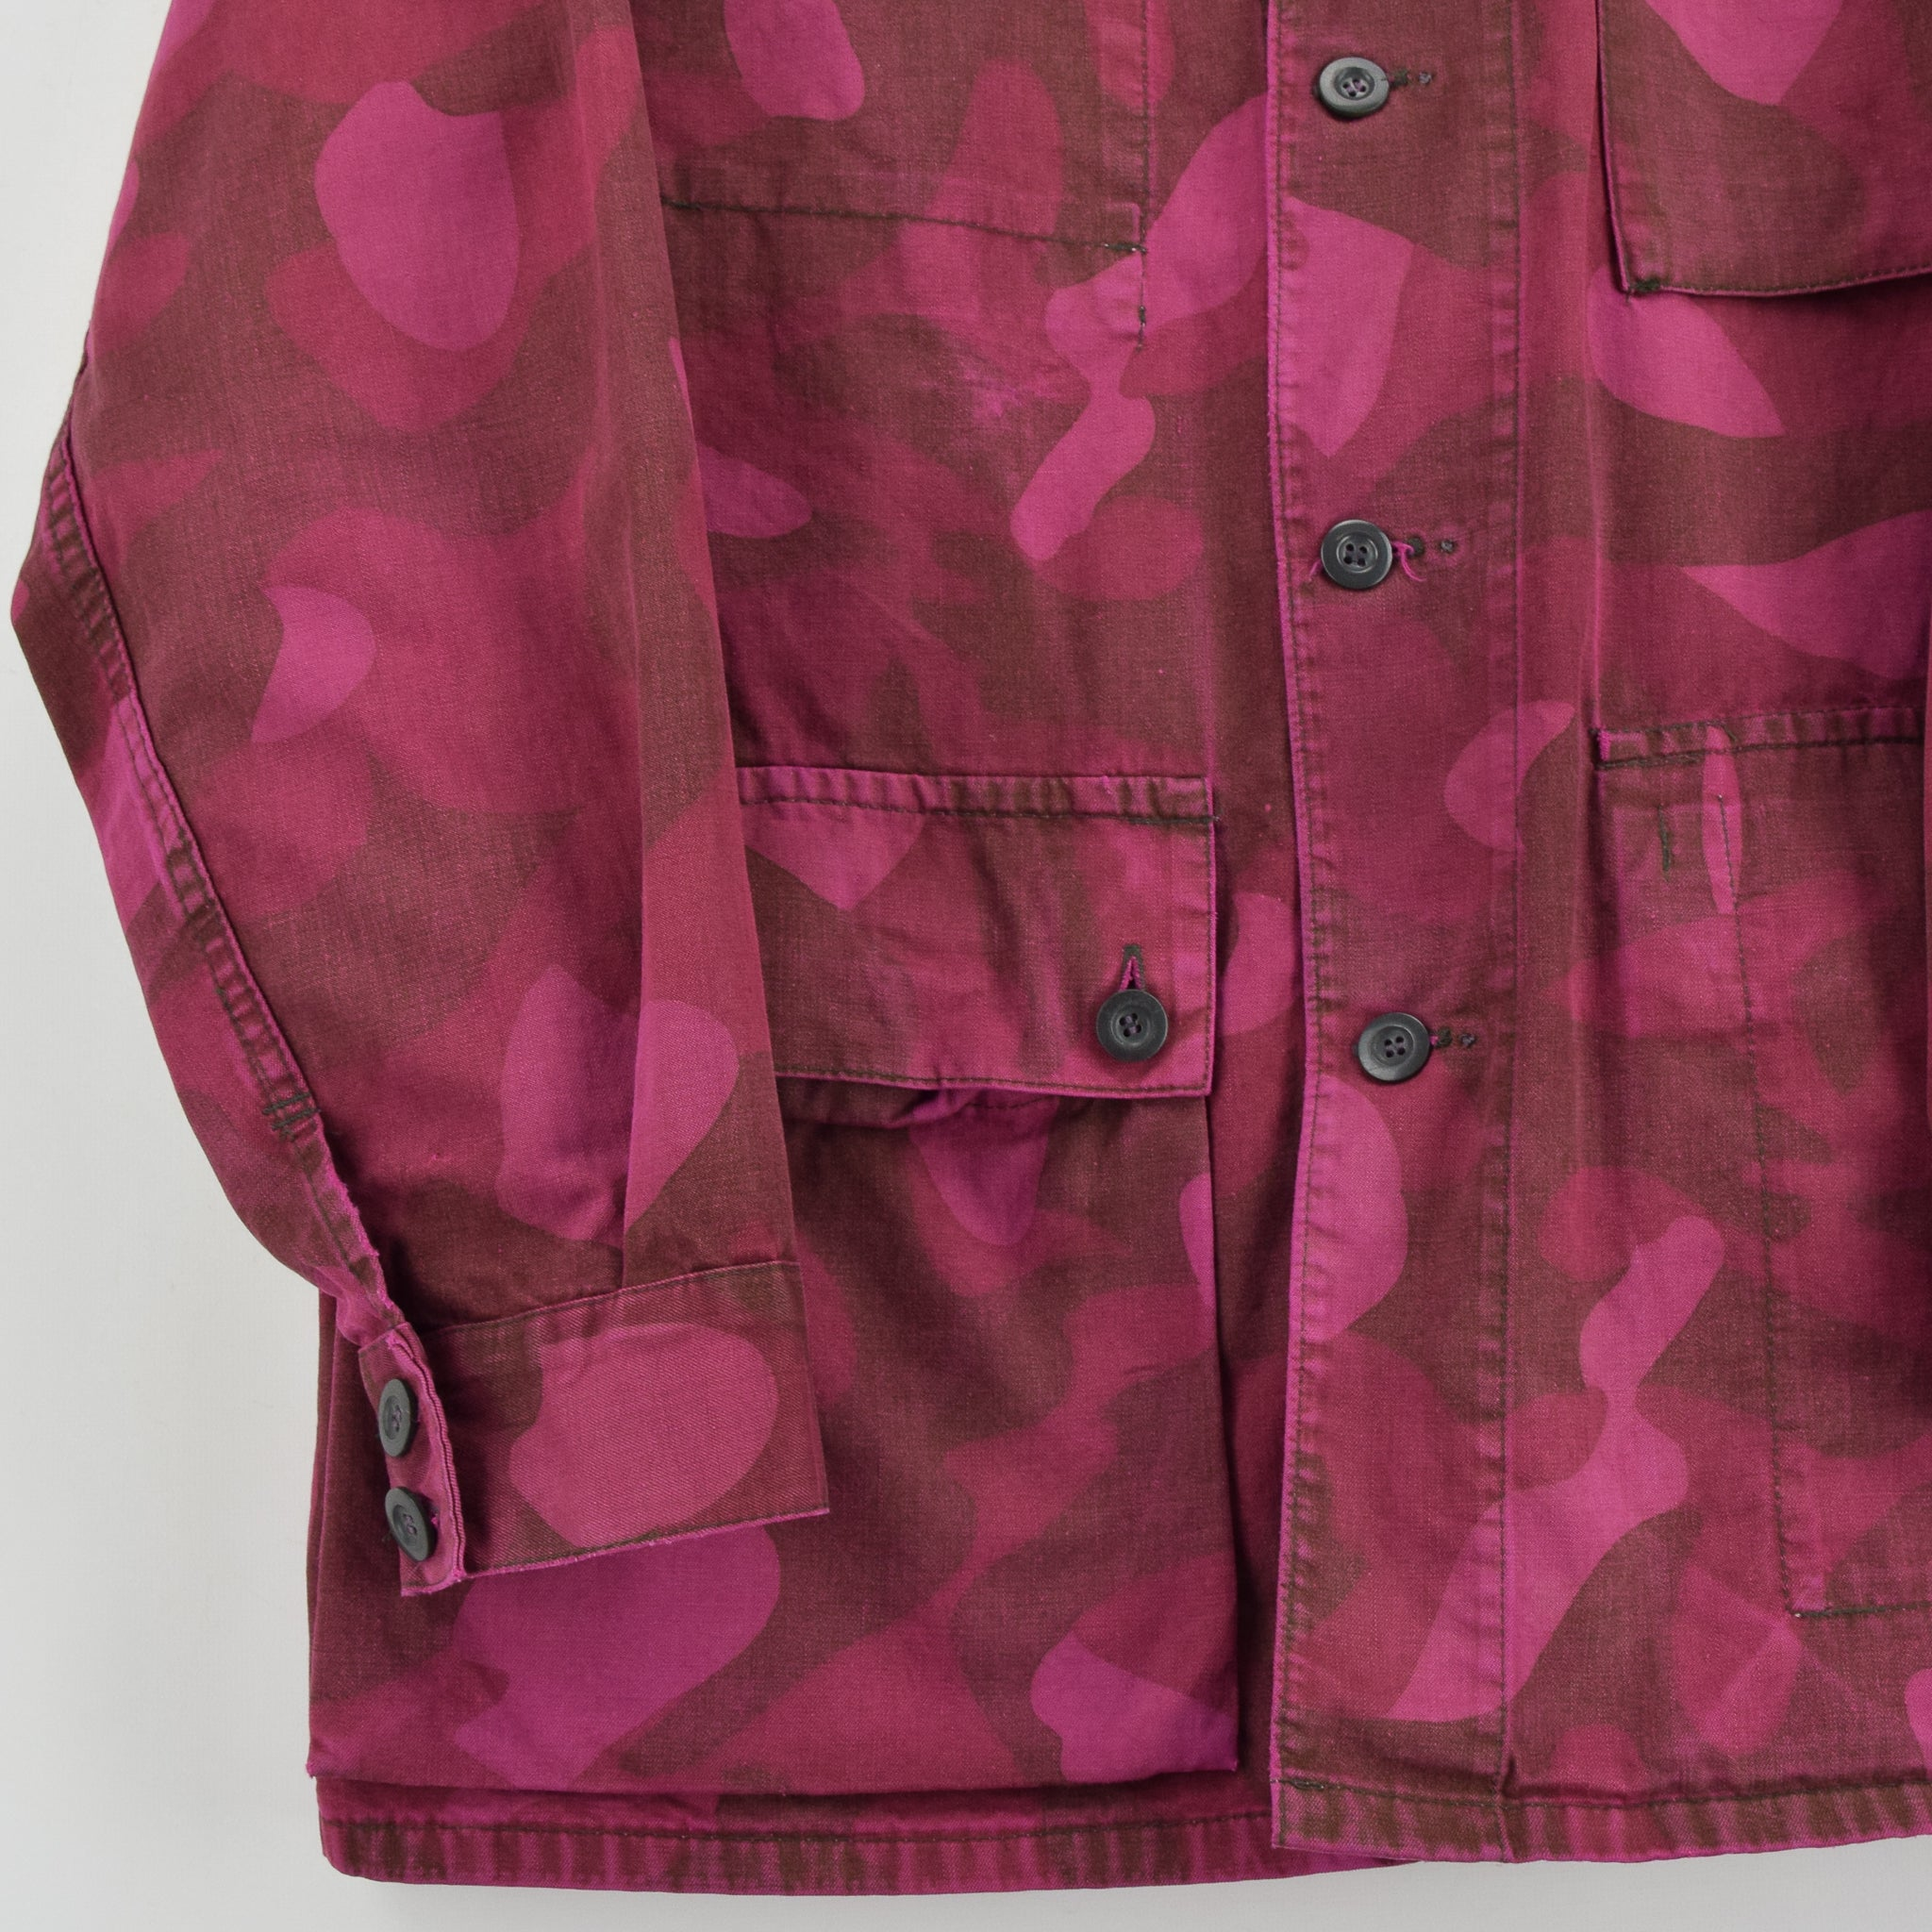 Vintage 70s Military Finnish Army Pink Overdyed Camo Mountain Field Jacket M front hem